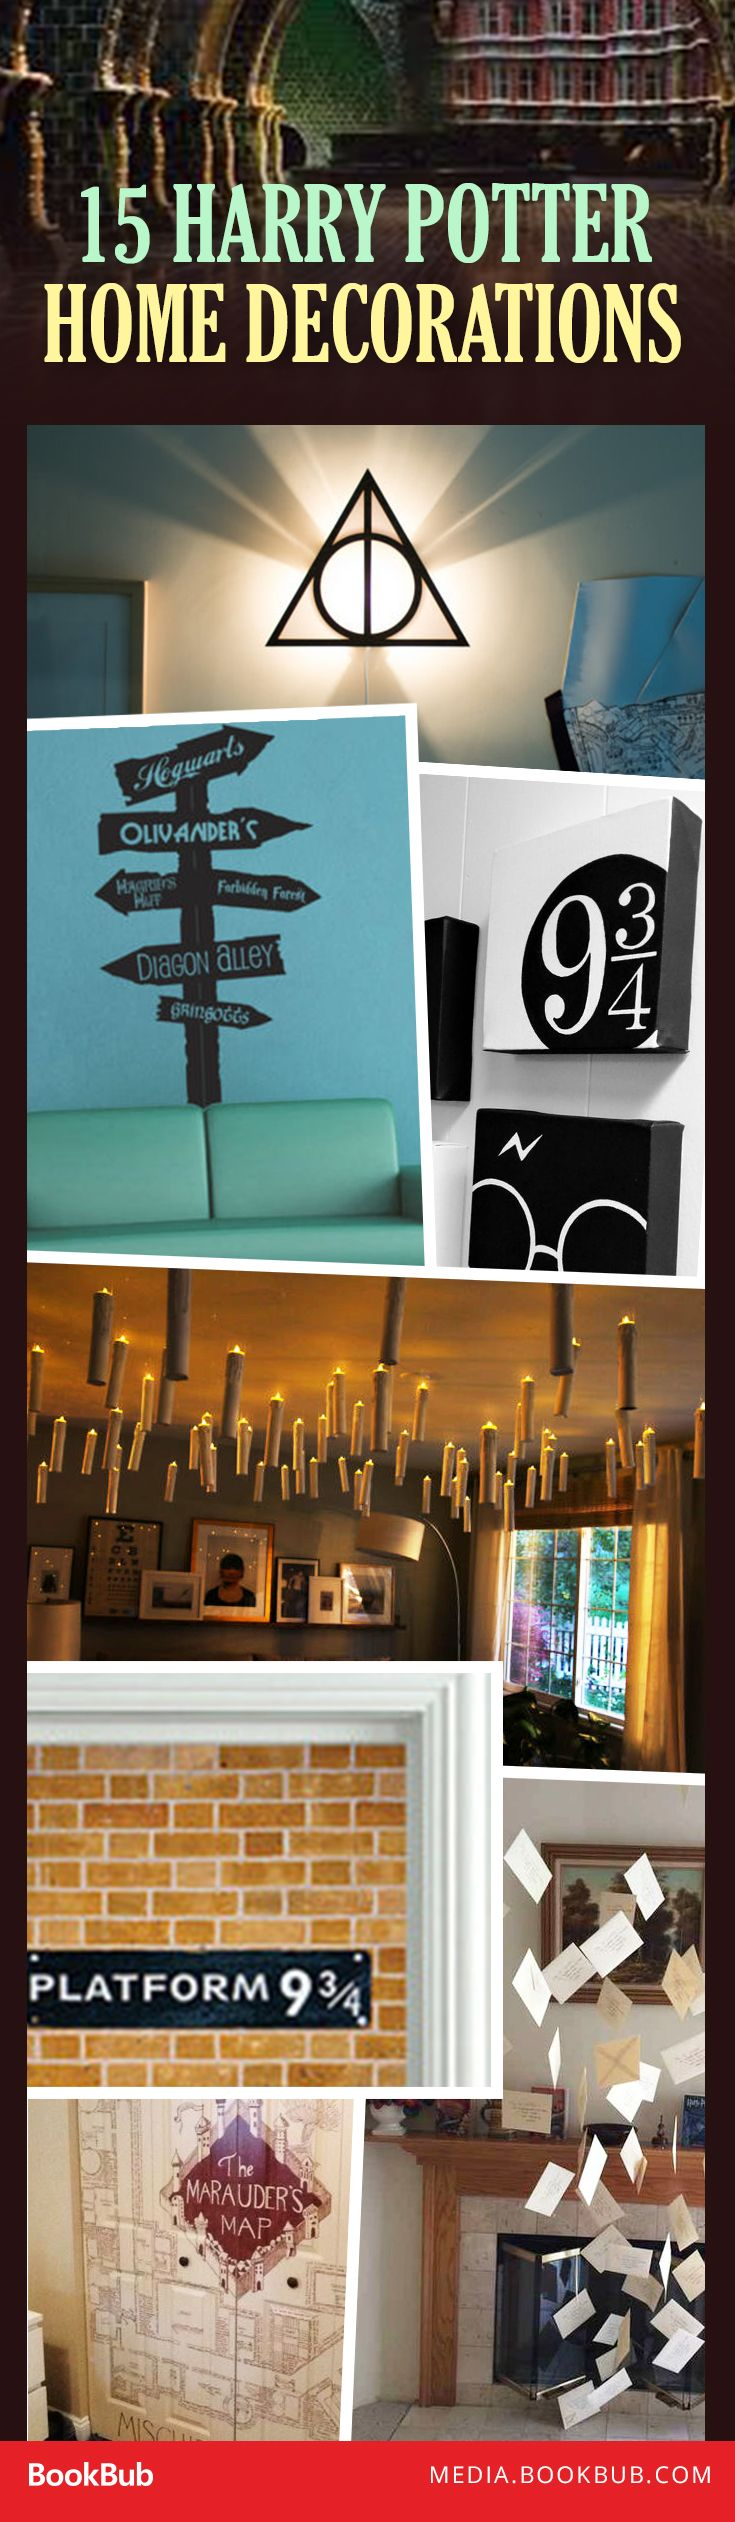 Dreamt of living in the world of Harry Potter? These home decorations may be the next best thing.